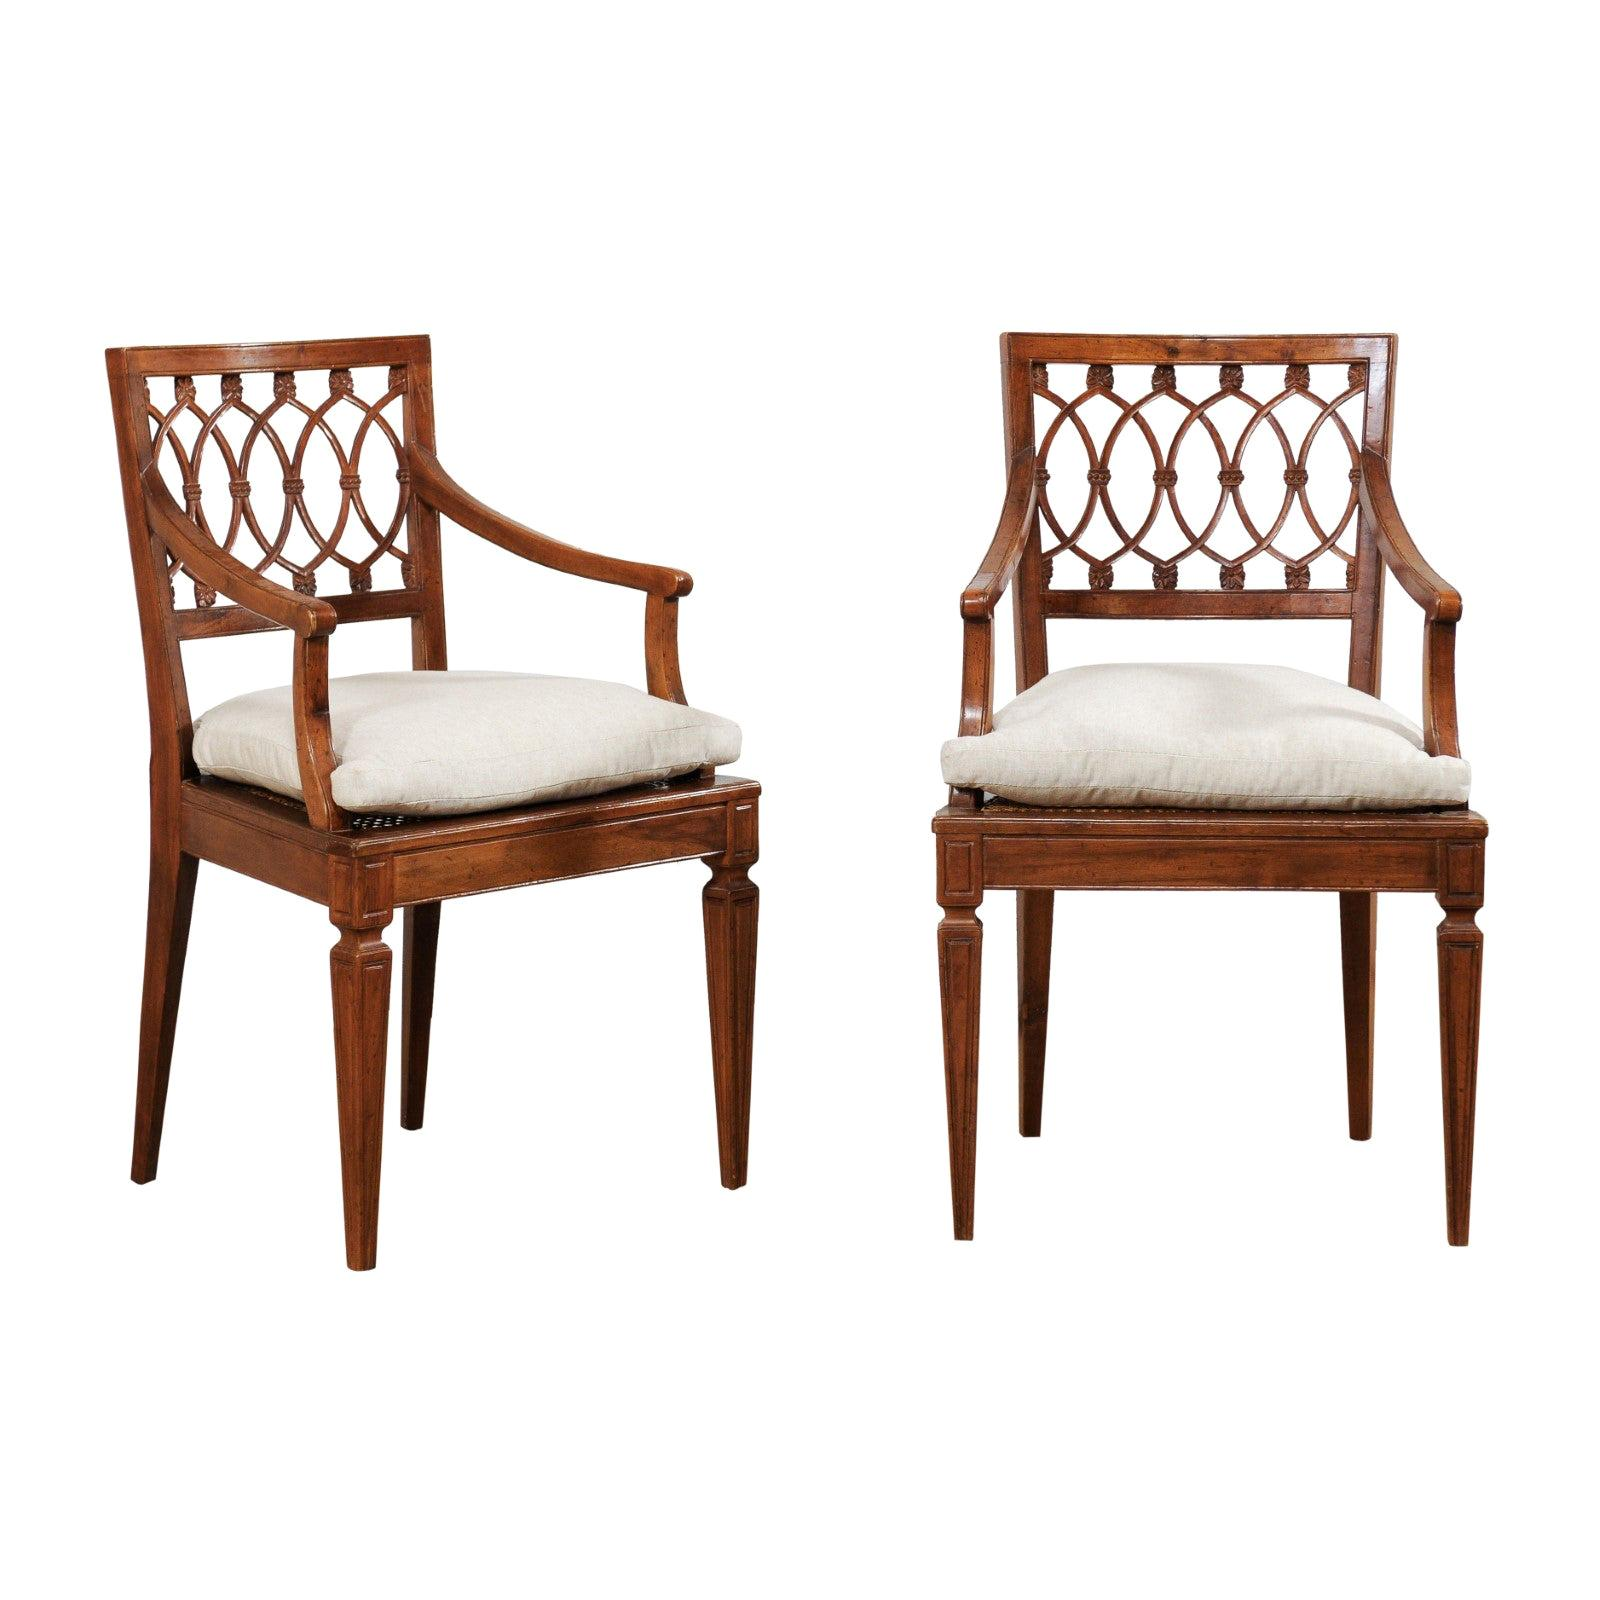 Pair of Italian Caved Wood Armchairs with Cane Seats, Mid-20th Century